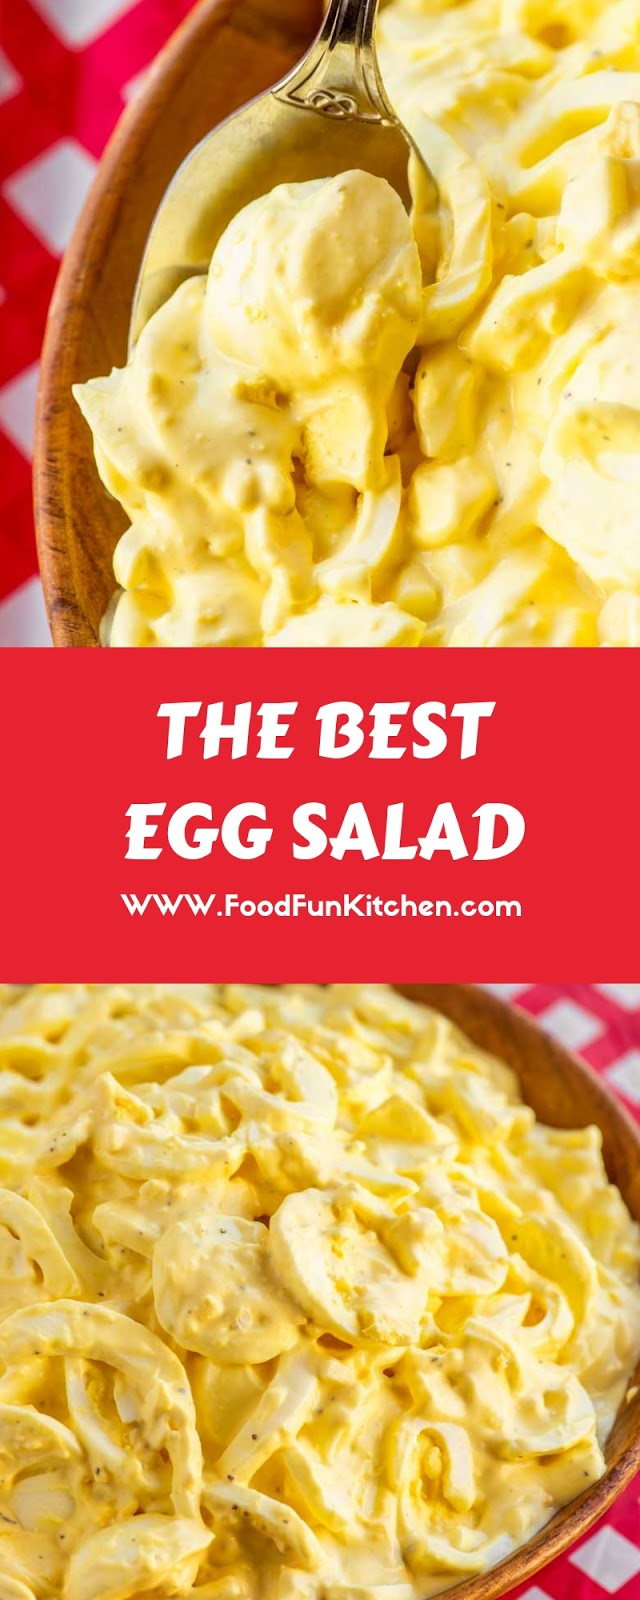 THE BEST EGG SALAD